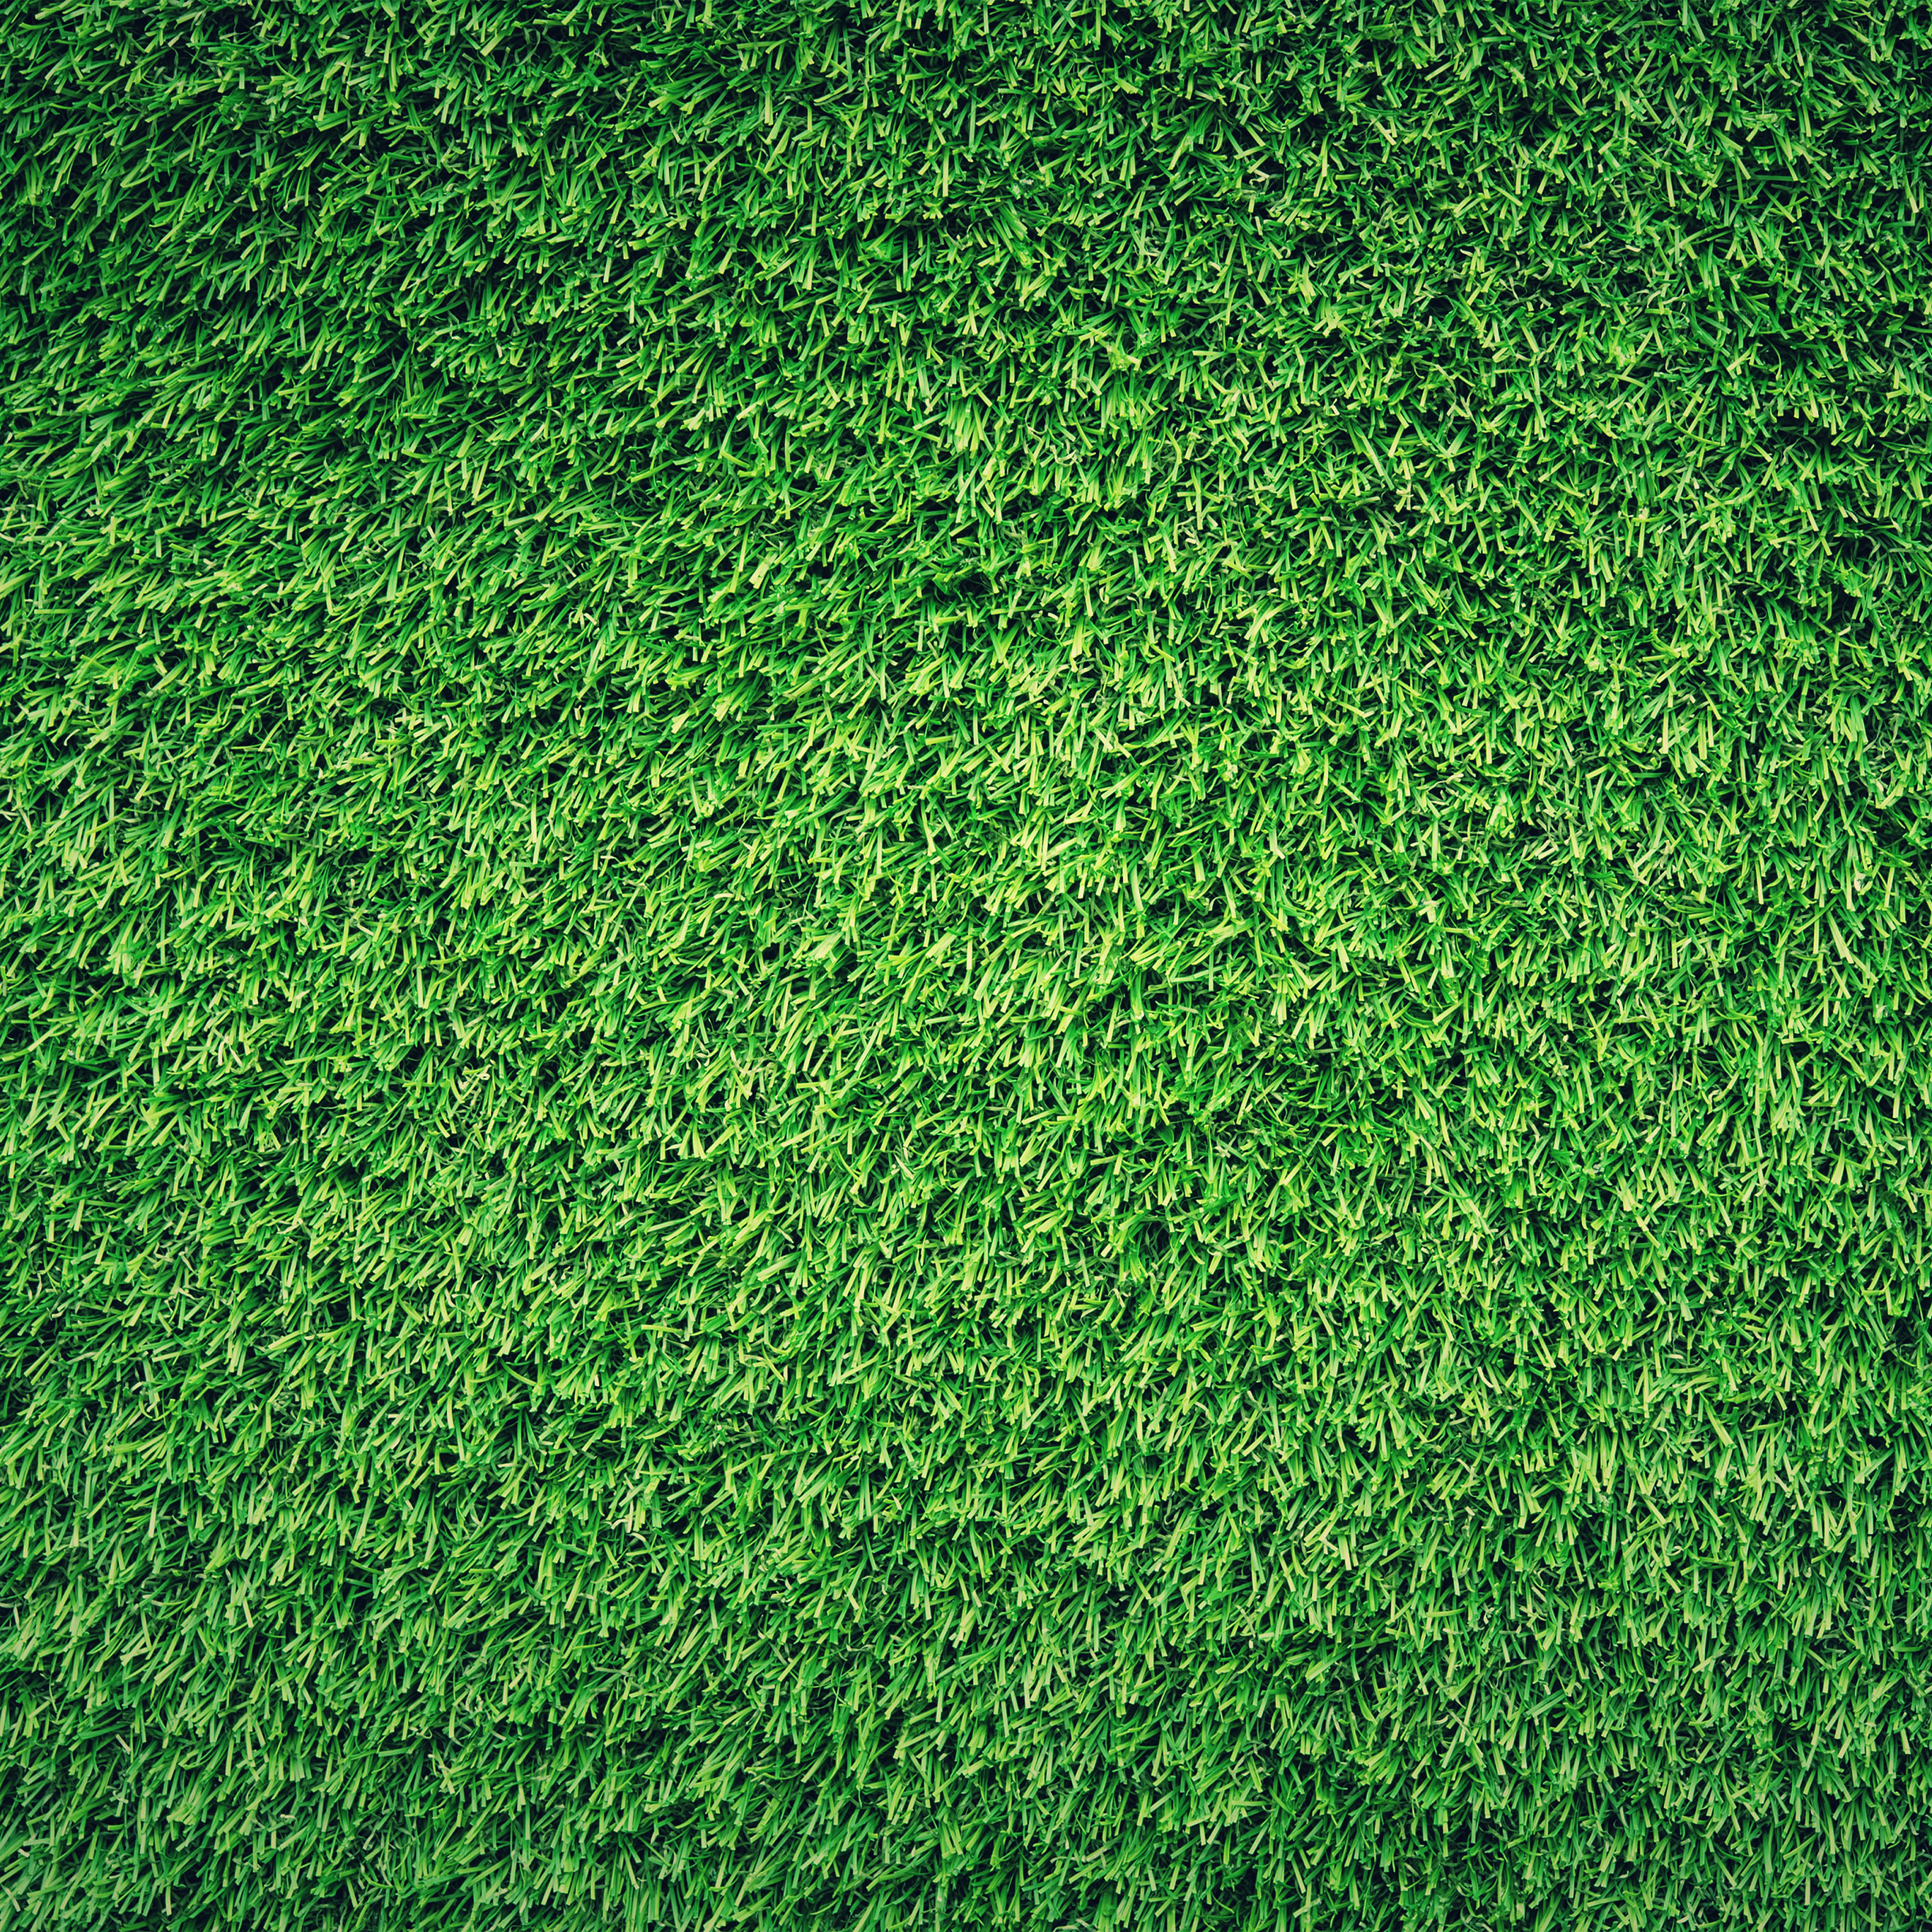 Lawn obsession creeps in